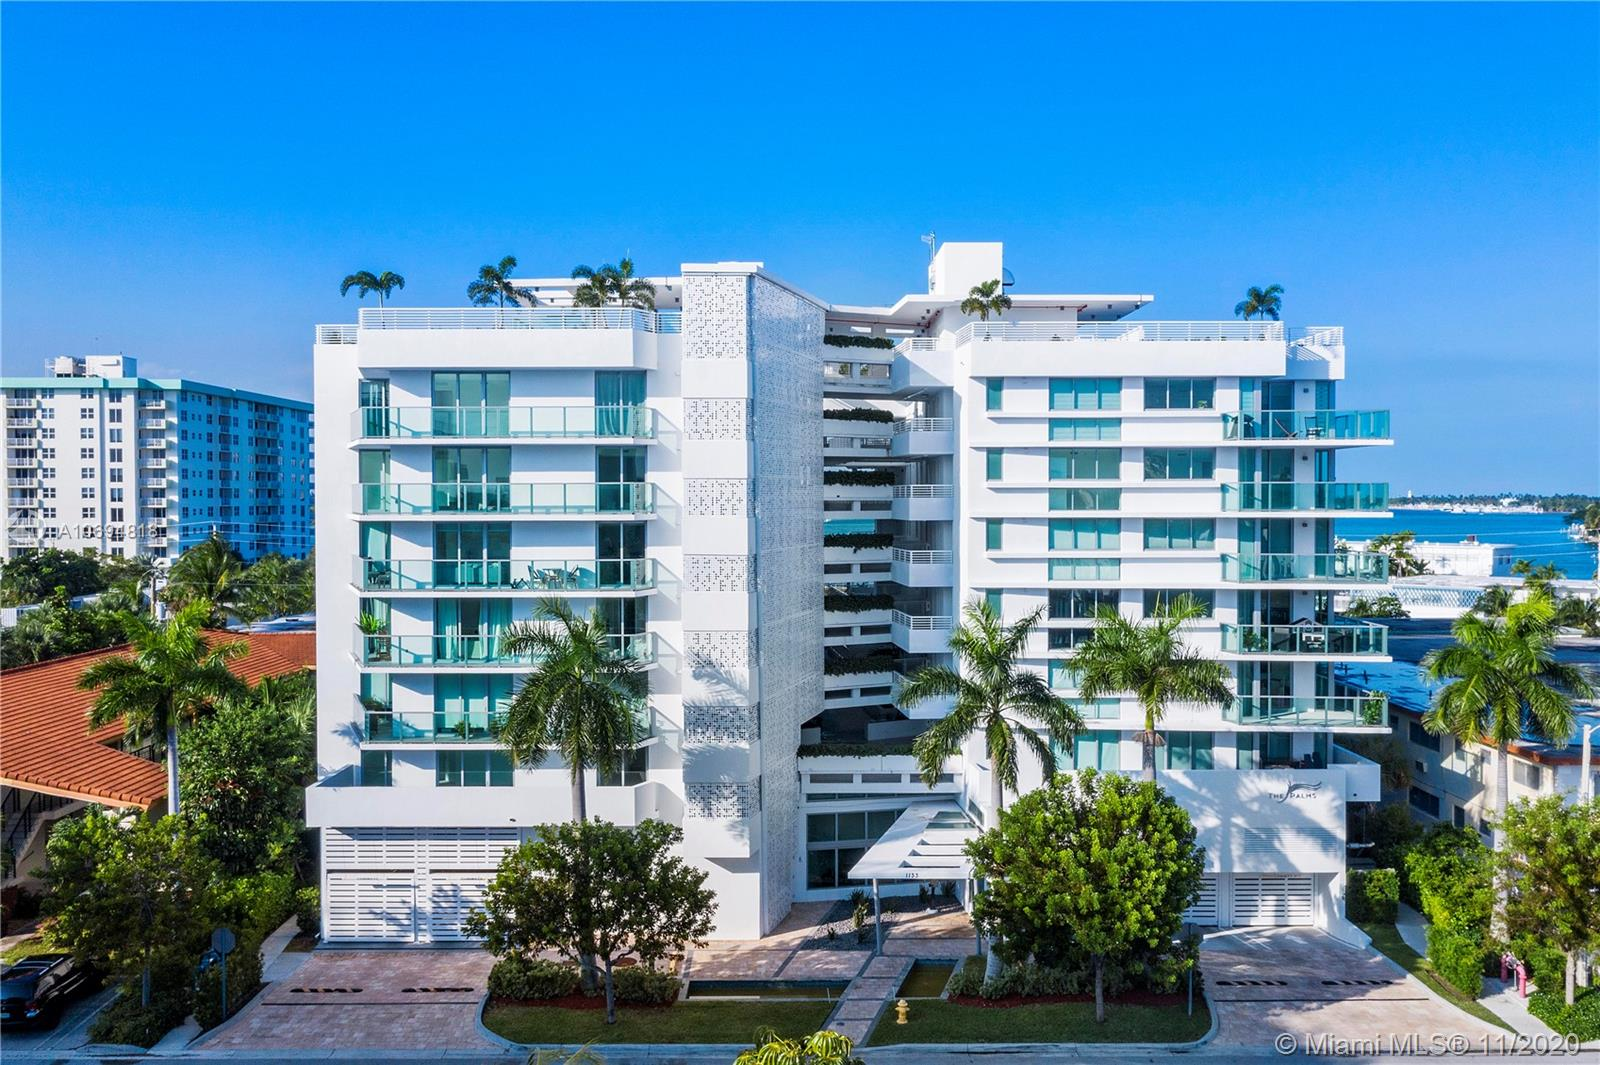 Brand new boutique style building in Bay Harbor Islands. Unit has 2 bedrooms and 2 bathrooms. Offers stainless steel appliances, tile throughout, washer and dryer inside, impact windows and wine cooler. Gorgeous views from the rooftop infinity pool and hot tub. Unit comes with 2 parking spaces (#81, #82). Walking distance to shopping, places of worship, and A+ Bay Harbor K-8 Education Center. Great for investment opportunity. Unit is currently rented through January 6, 2021 at $2,800 per Month. 24 hour notice needed for showing. Private rooftop terrace with electric grill and sink included with the purchase of this unit. Unit is currently rented month to month.